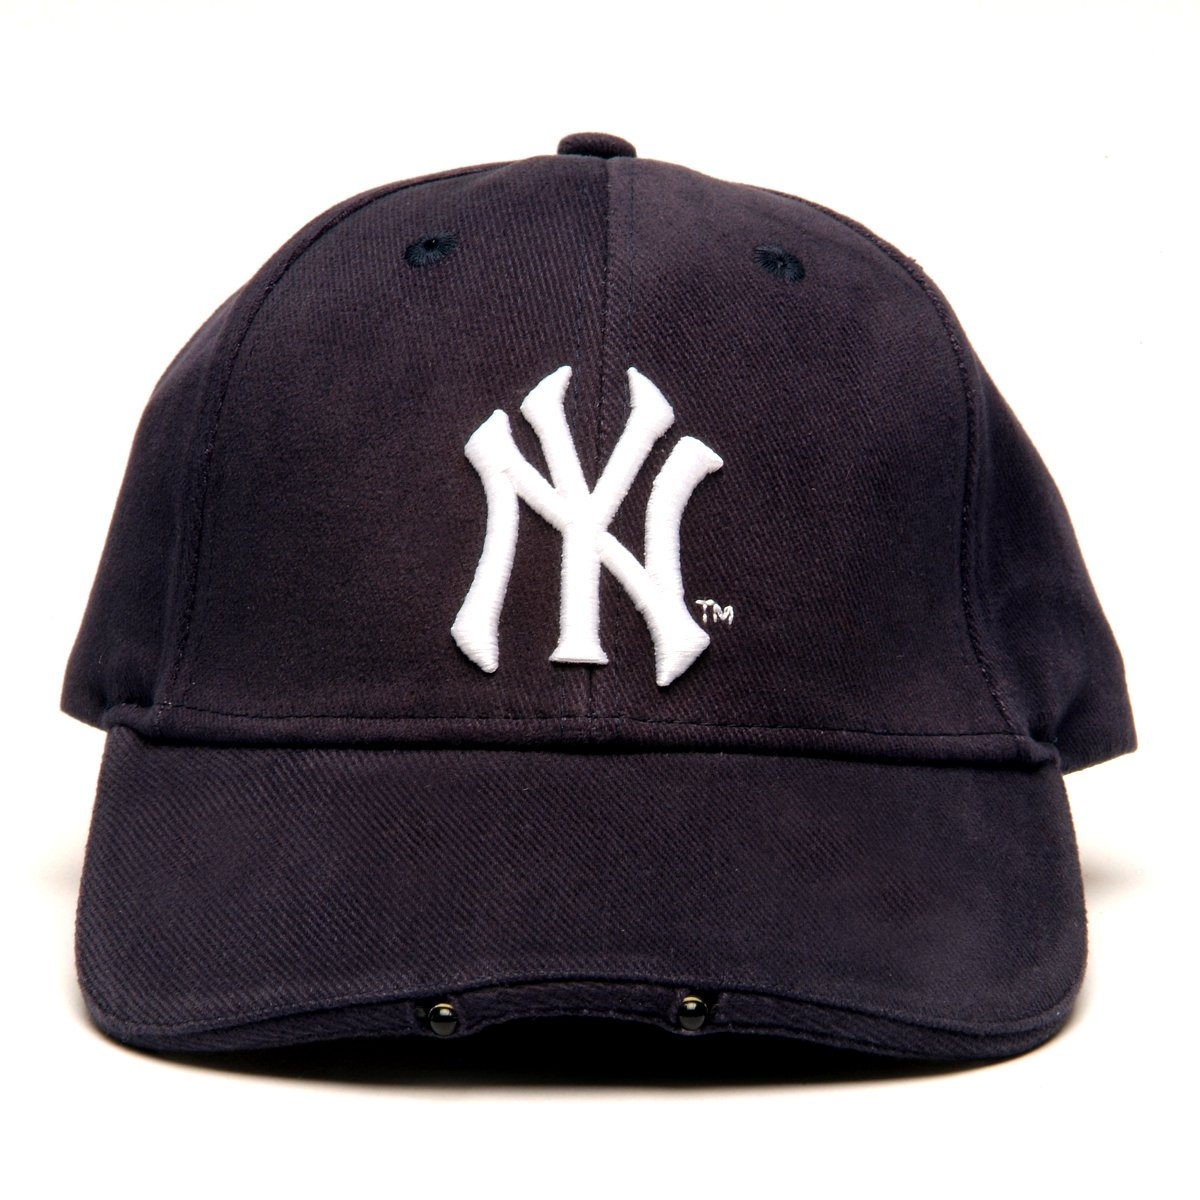 Amazon.com   MLB New York Yankees Dual LED Headlight Adjustable Hat    Yankees Lighted Hats   Sports   Outdoors d7c8cbea5509